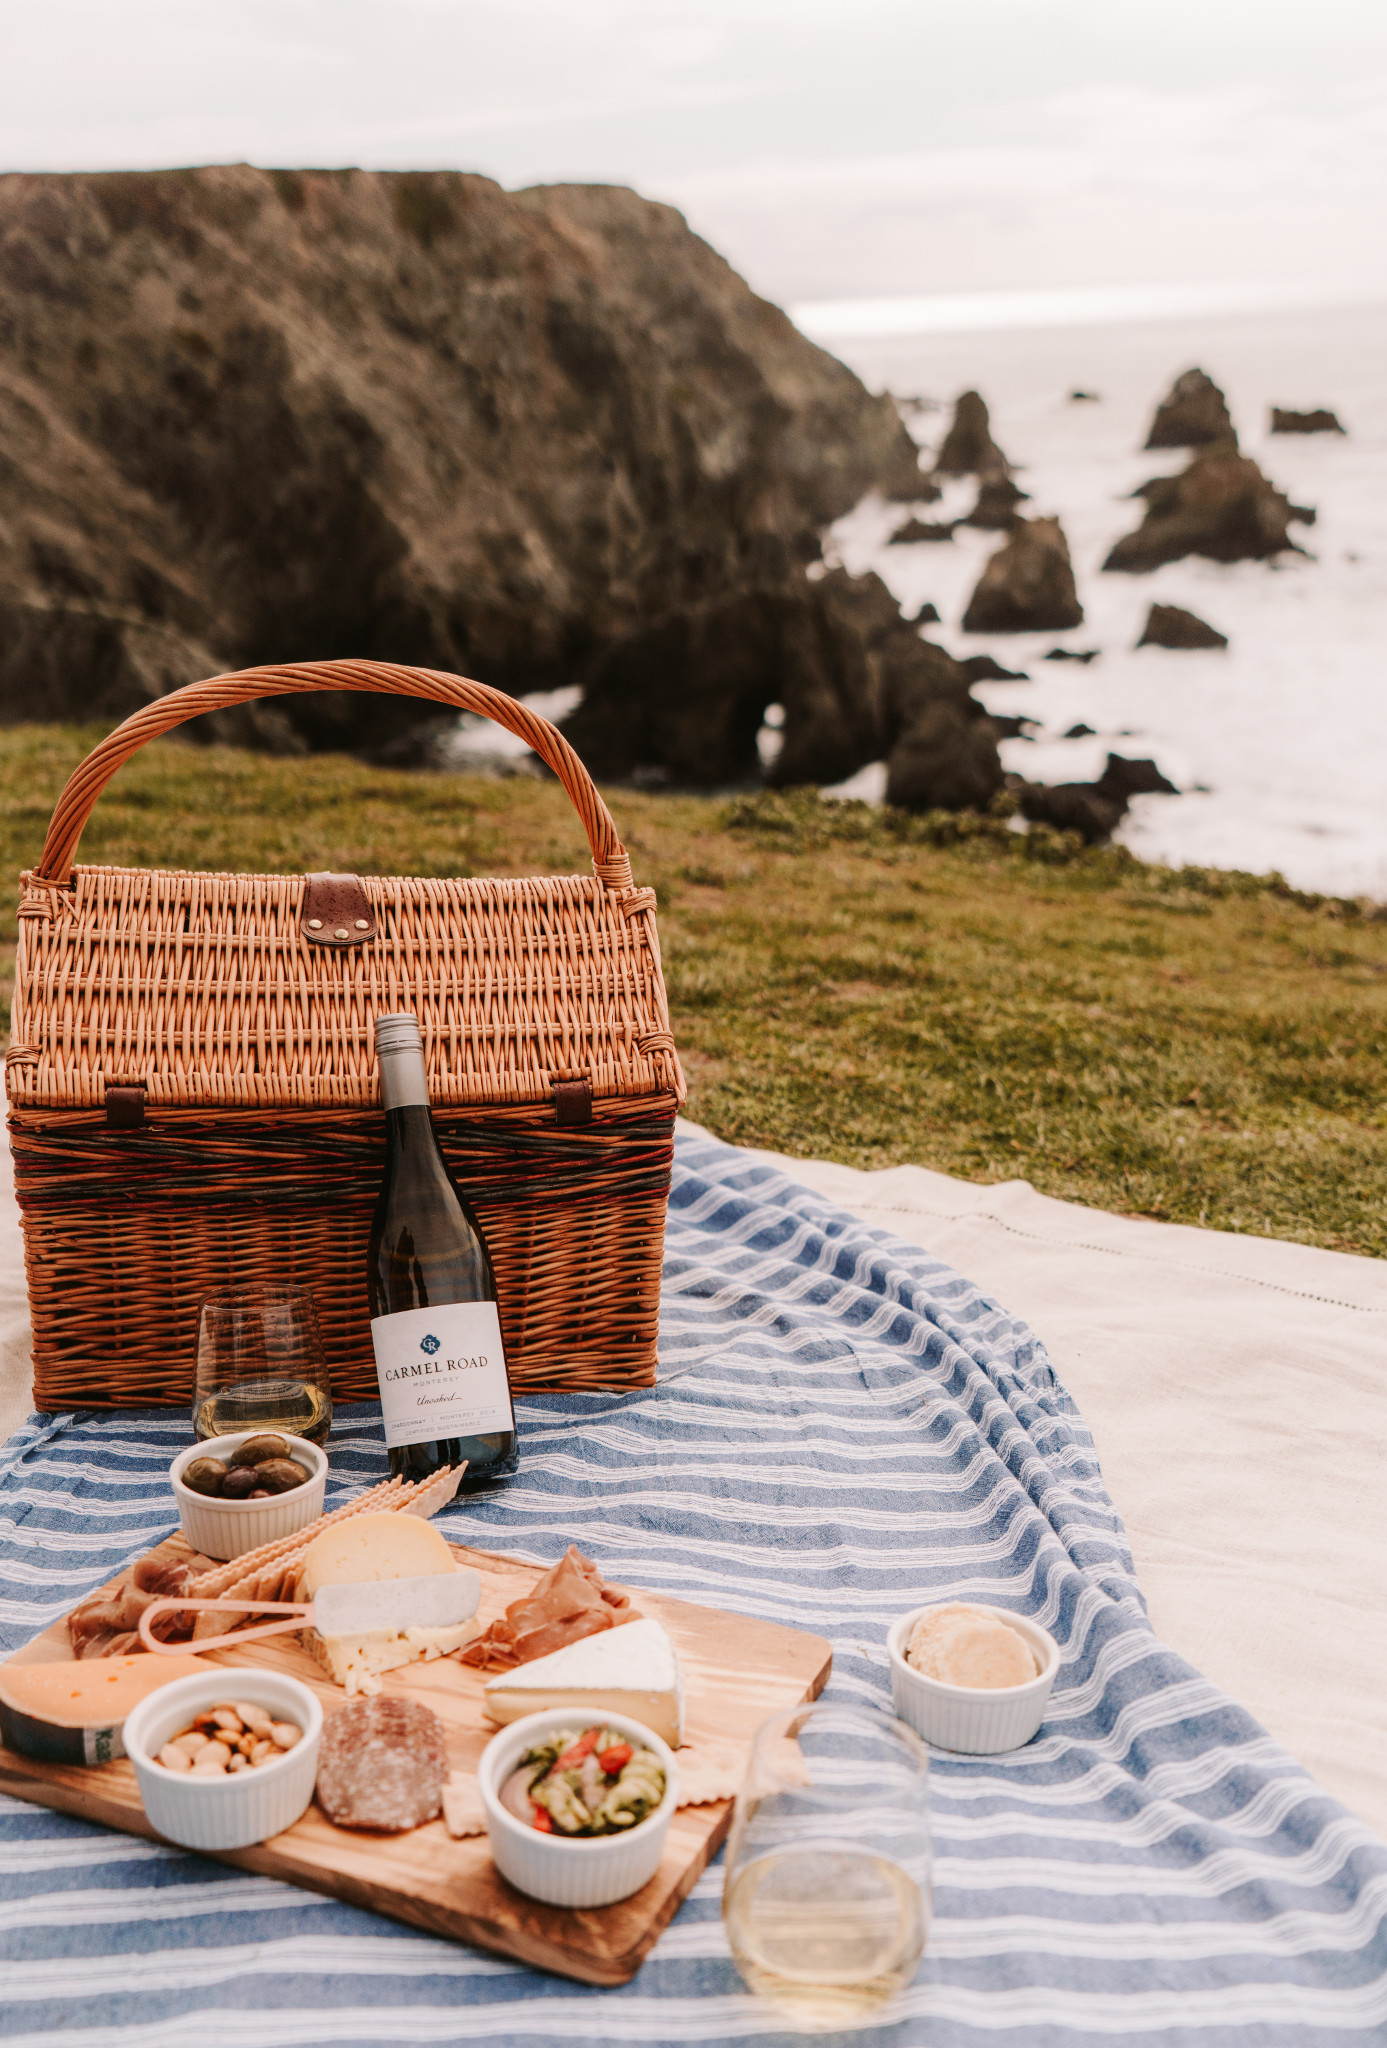 Picnic with Carmel Road Wines